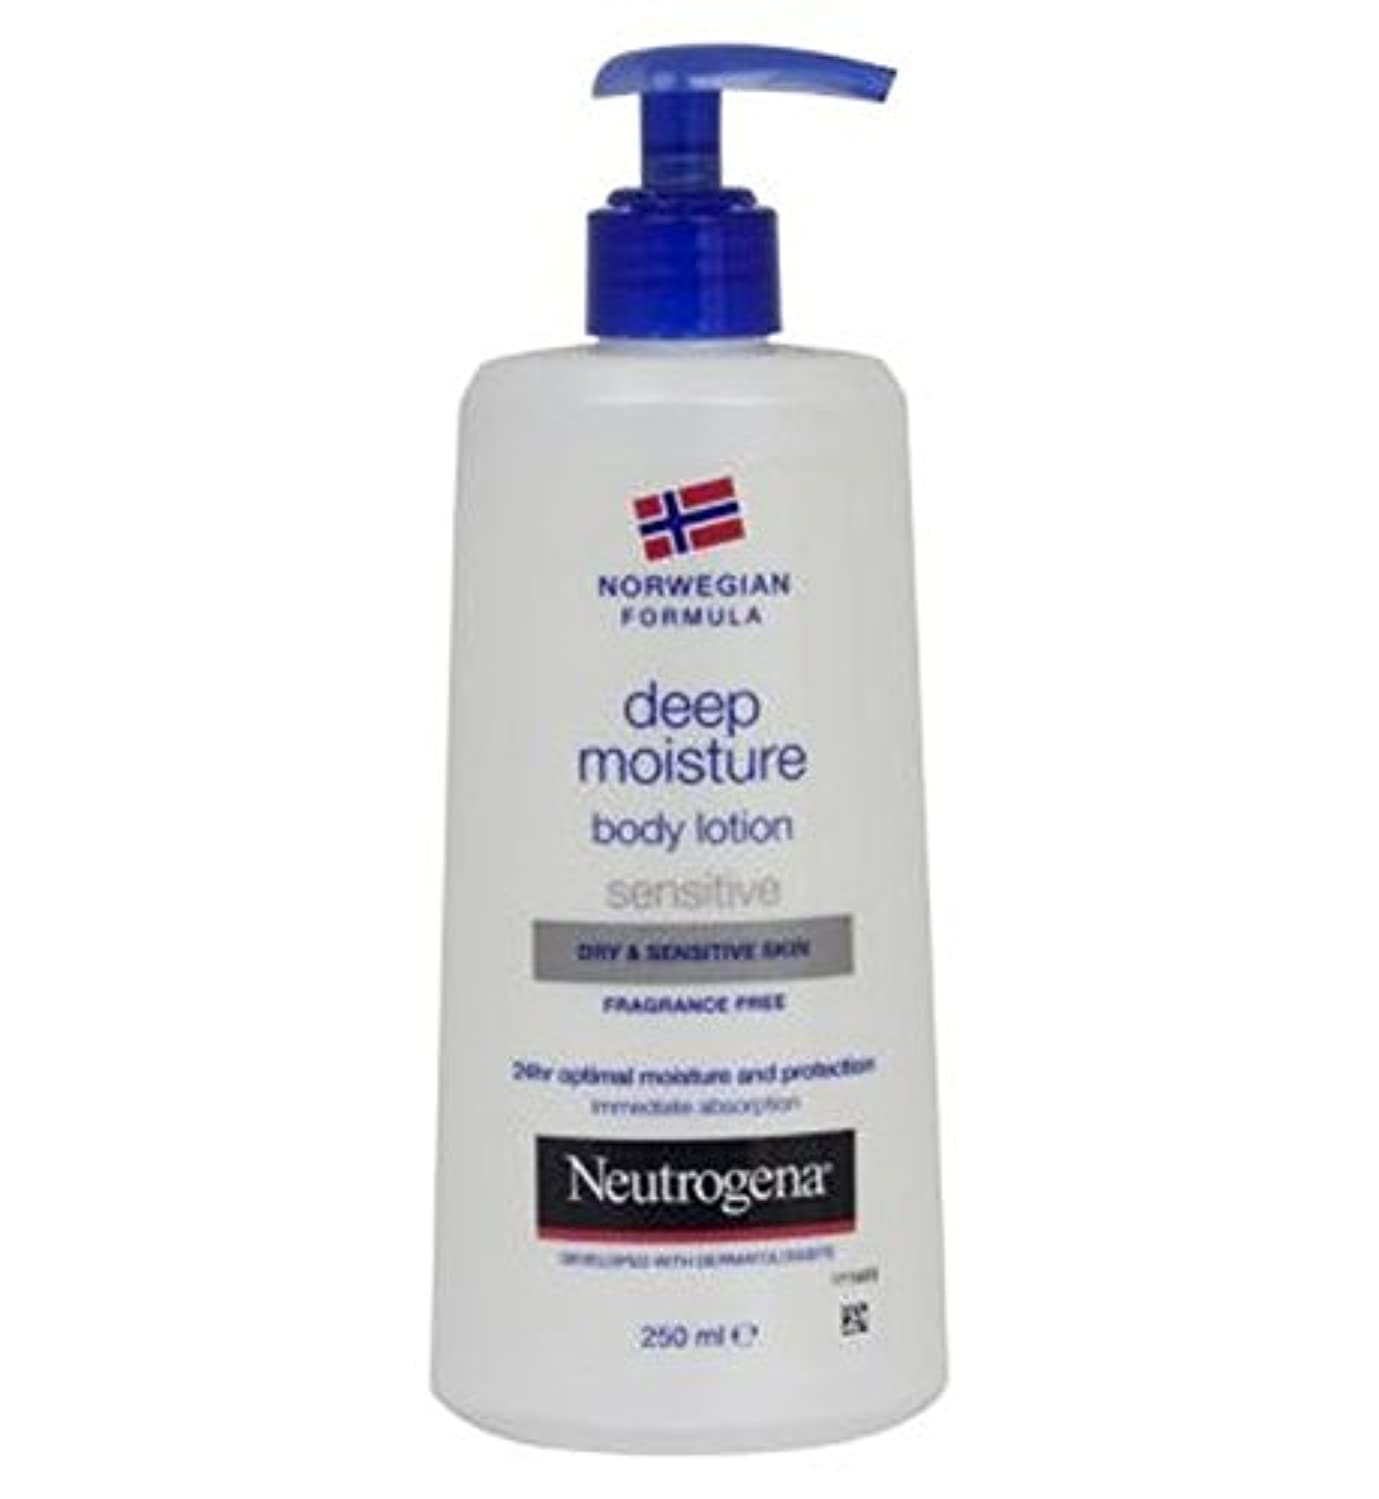 言う空の上向きNeutrogena Norwegian Formula Deep Moistuire Body Lotion Sensitive For Dry & Sensitive Skin 250ml - ドライ&敏感肌用250...